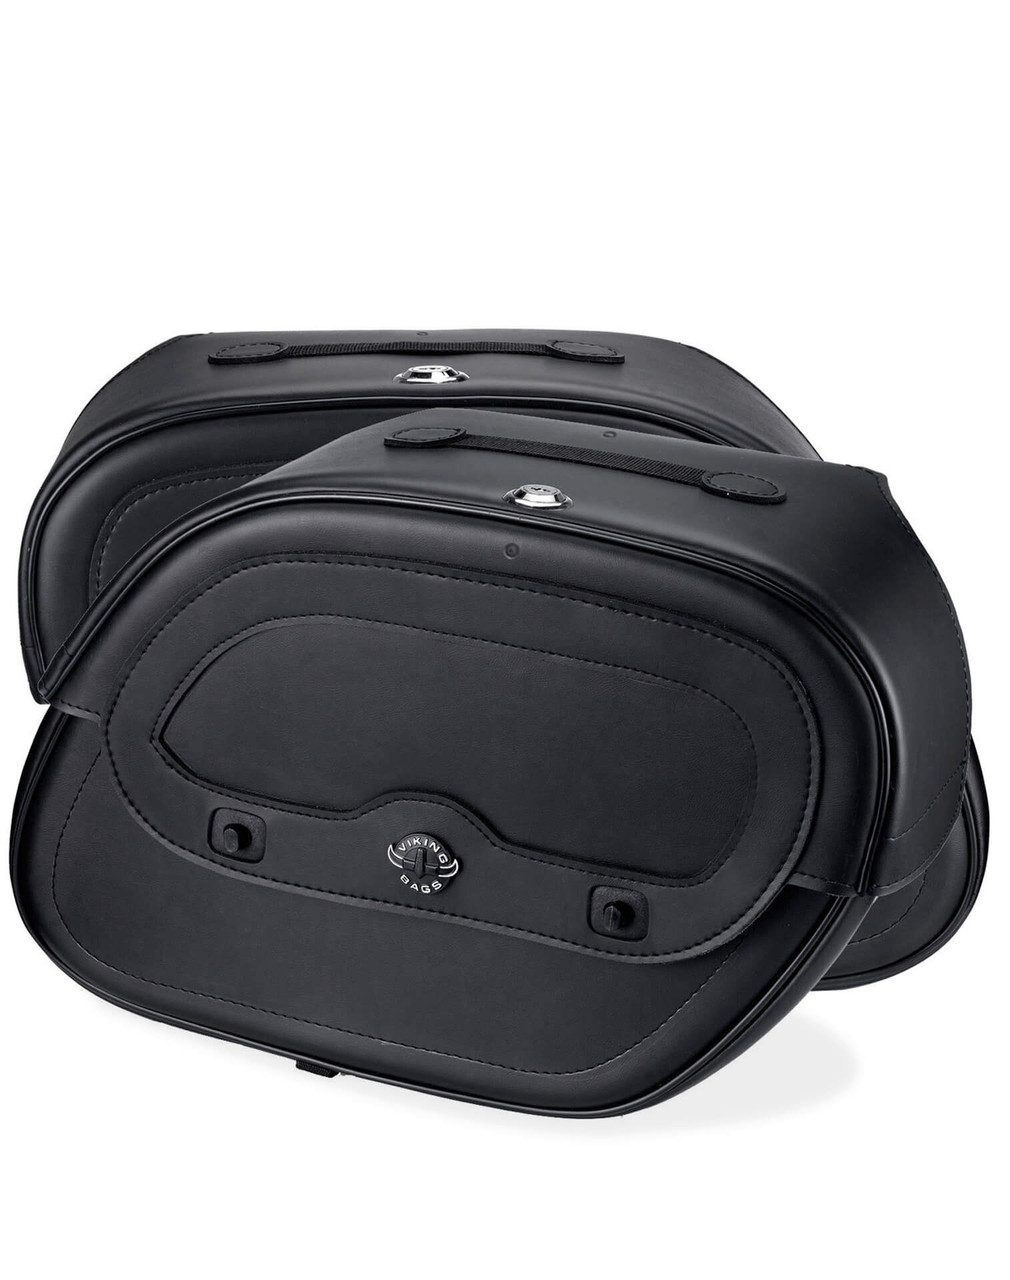 Honda 1500 Valkyrie Interstate Spear Shock Cutout Motorcycle Saddlebags Both Bags View